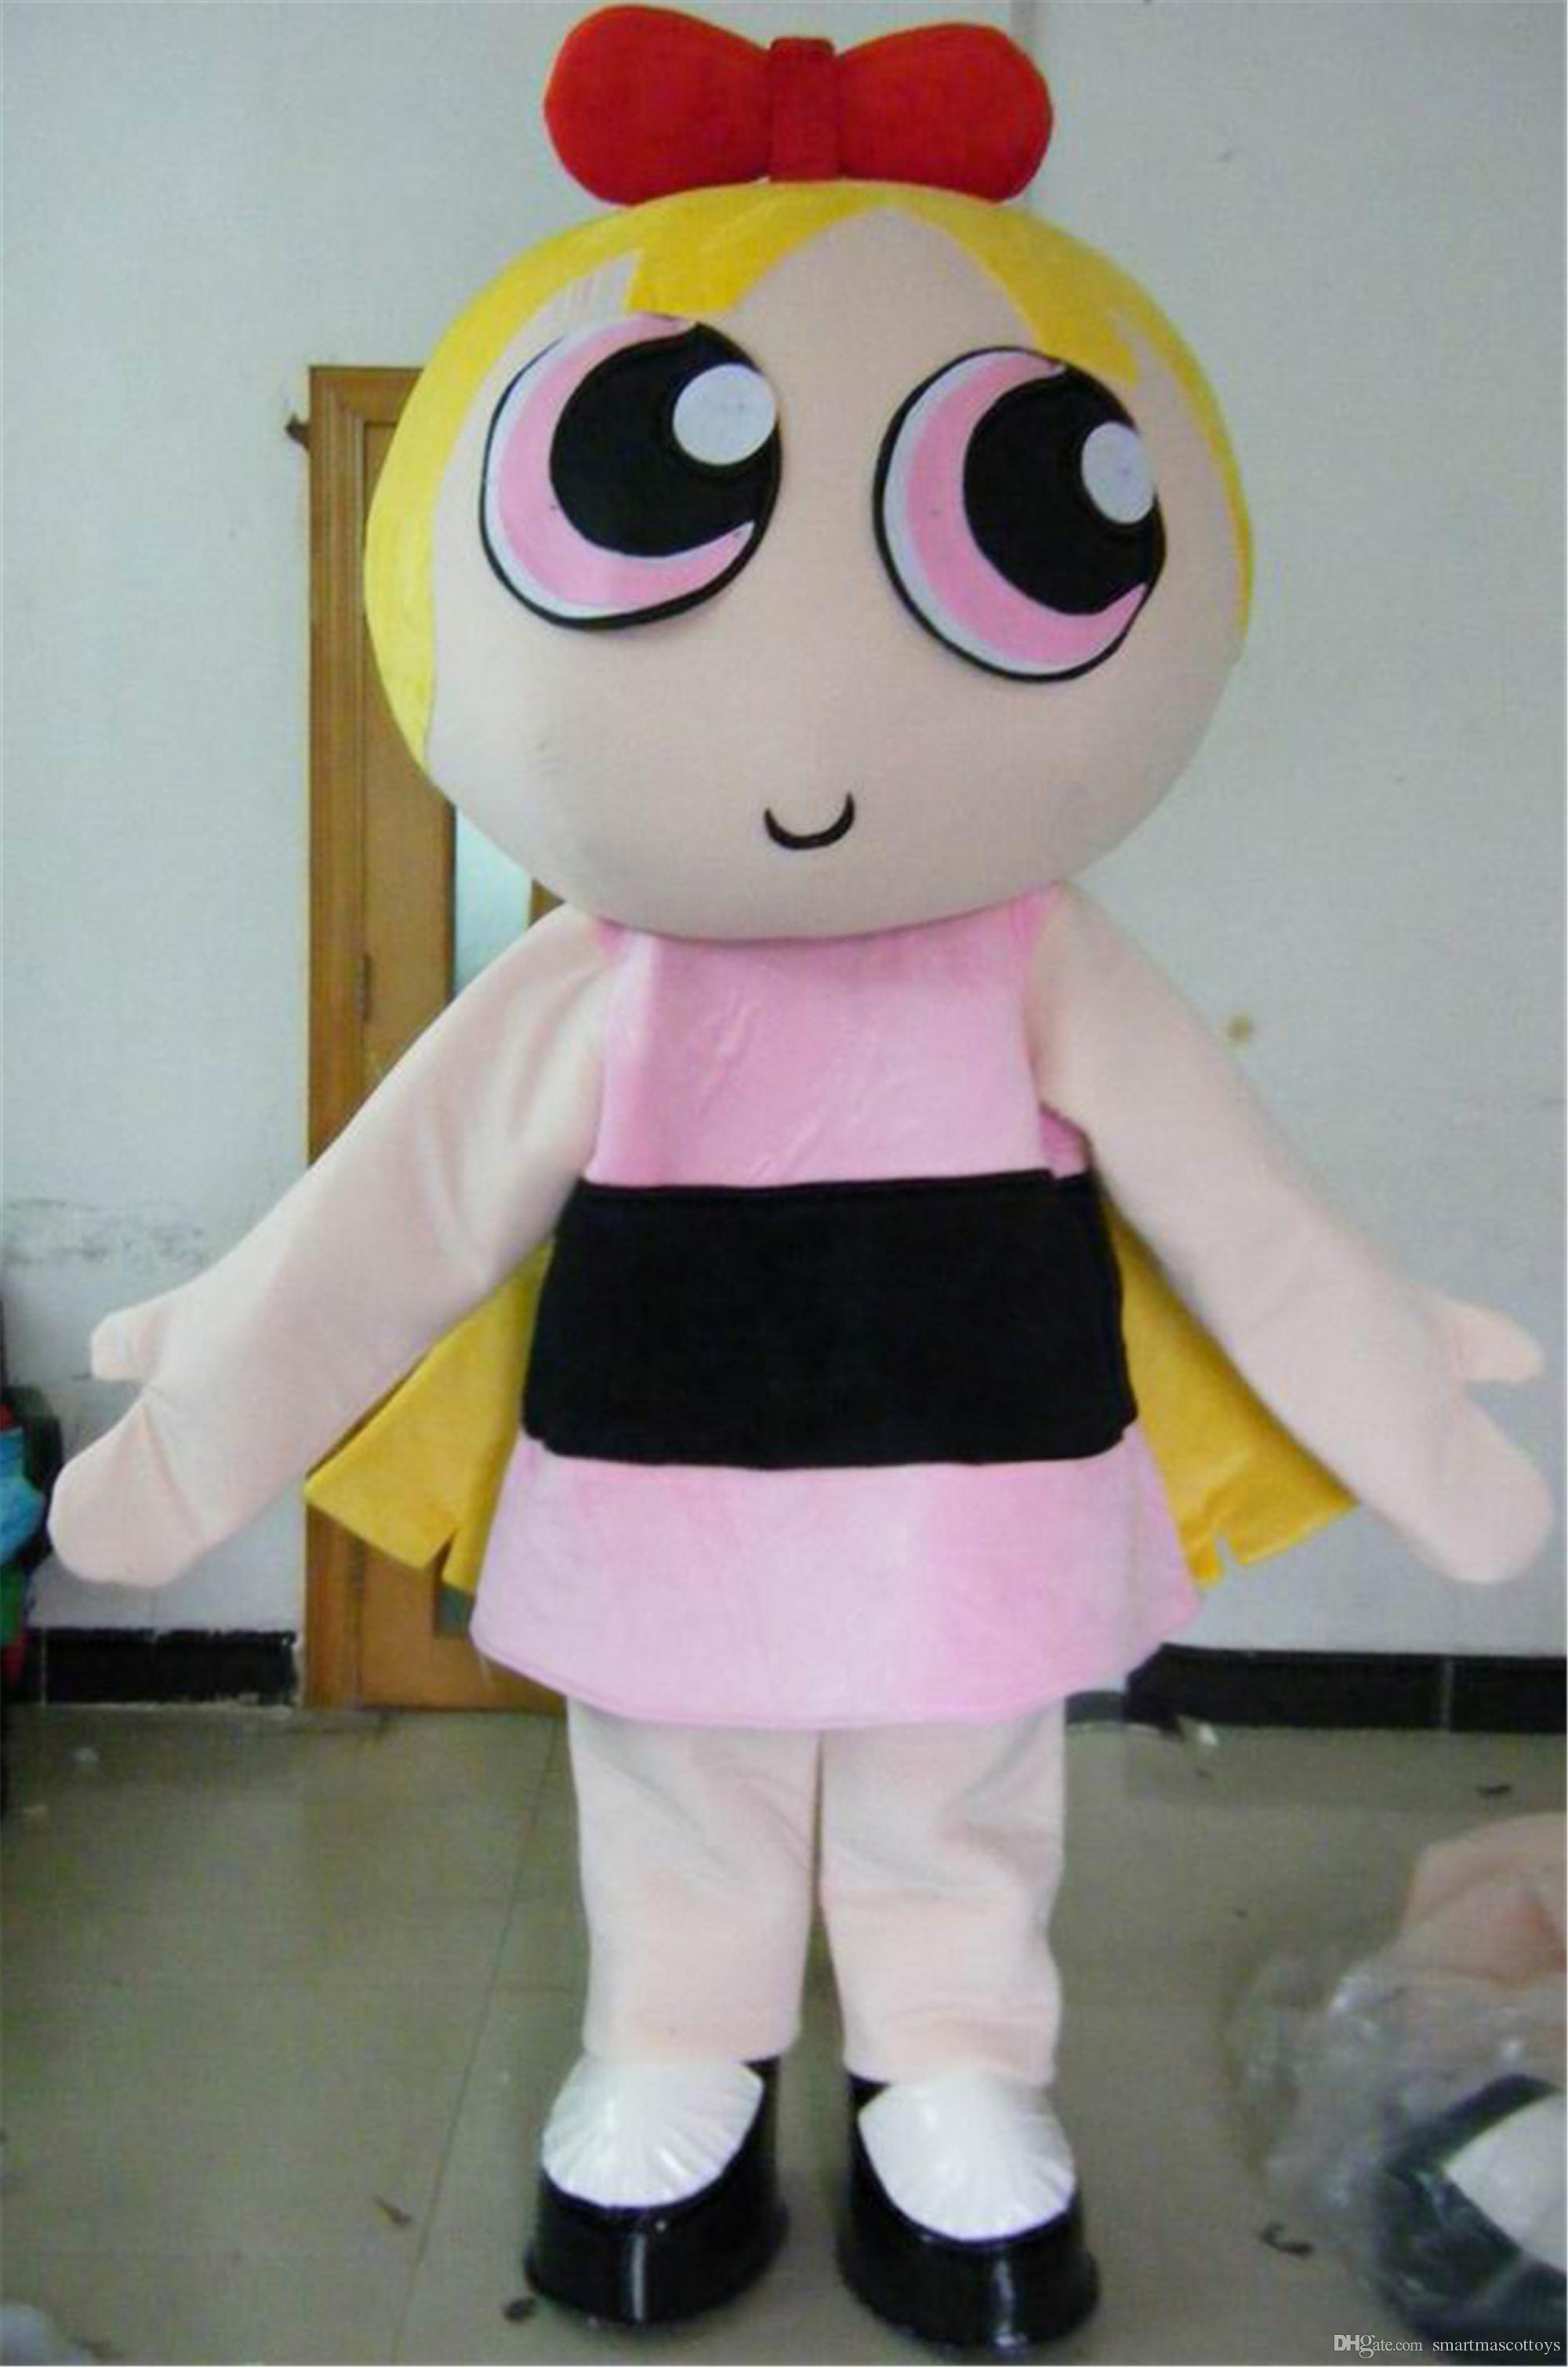 Cute Adult The Yellow Powerpuff Girls Mascot Costume For Adult To